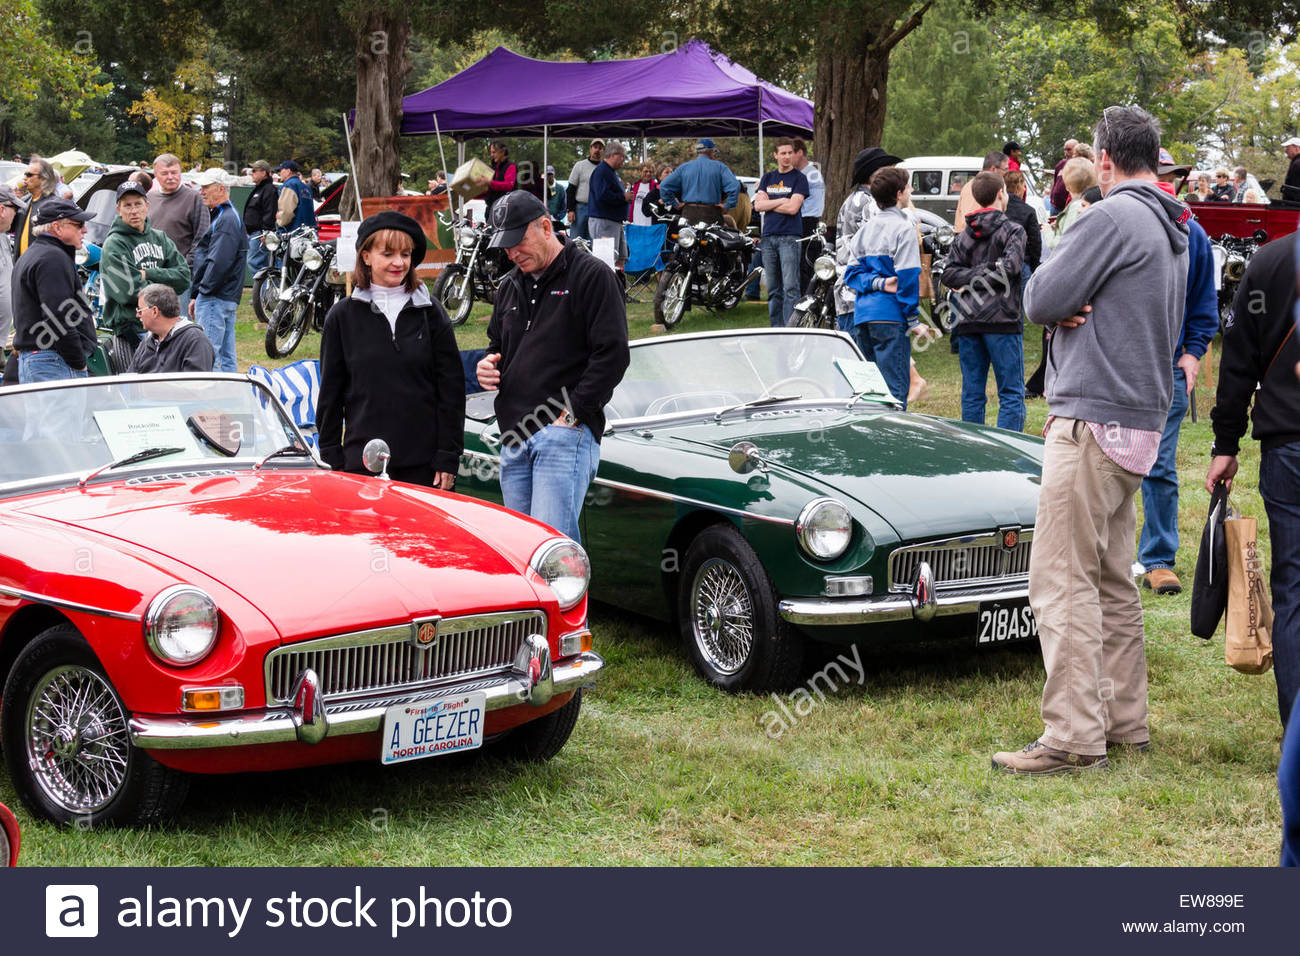 Classic Cars Car Show Stock Photos & Classic Cars Car Show Stock ...